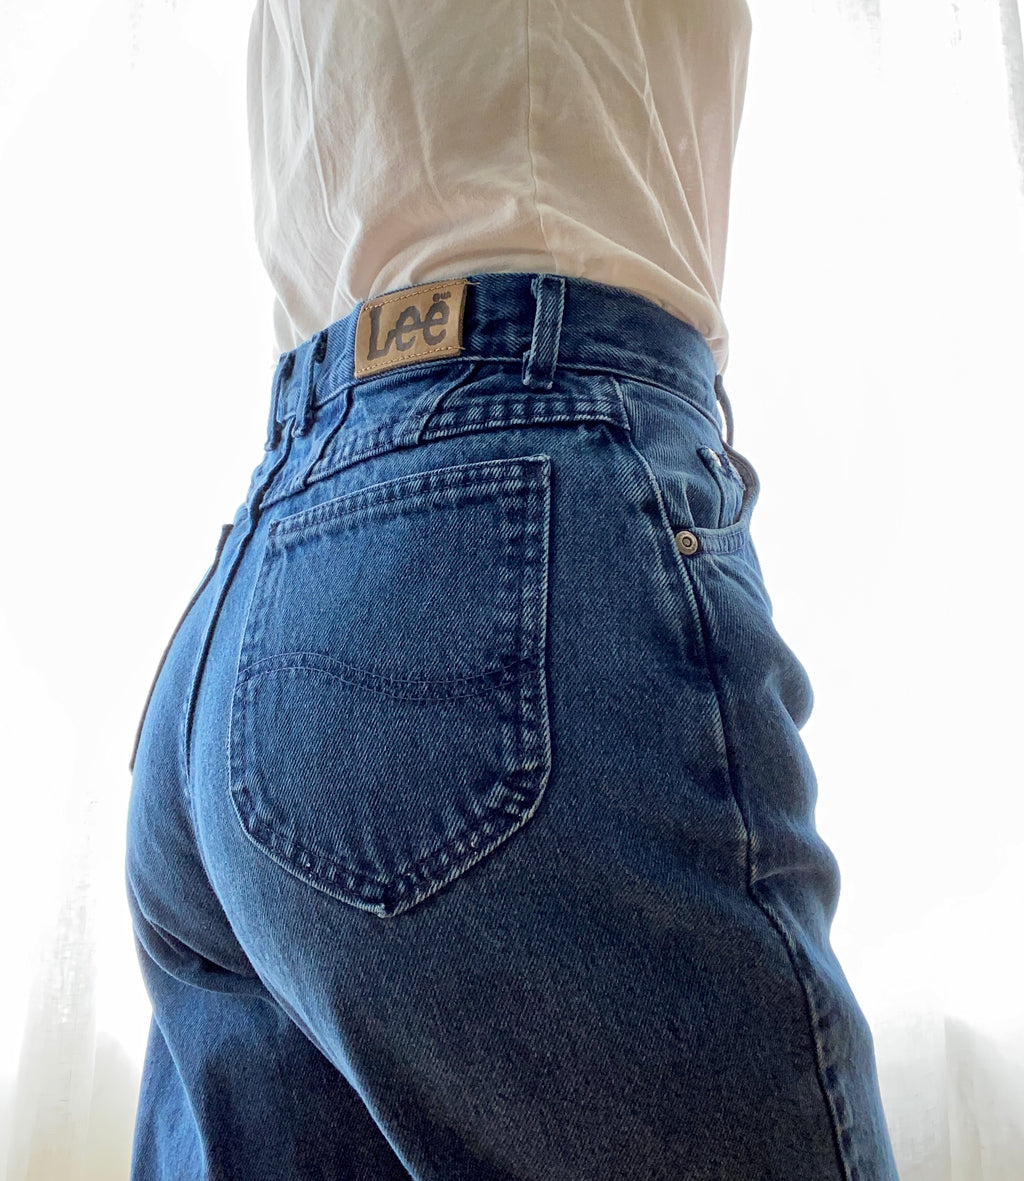 Vintage High Waisted Blue Denim LEE Jeans size 28